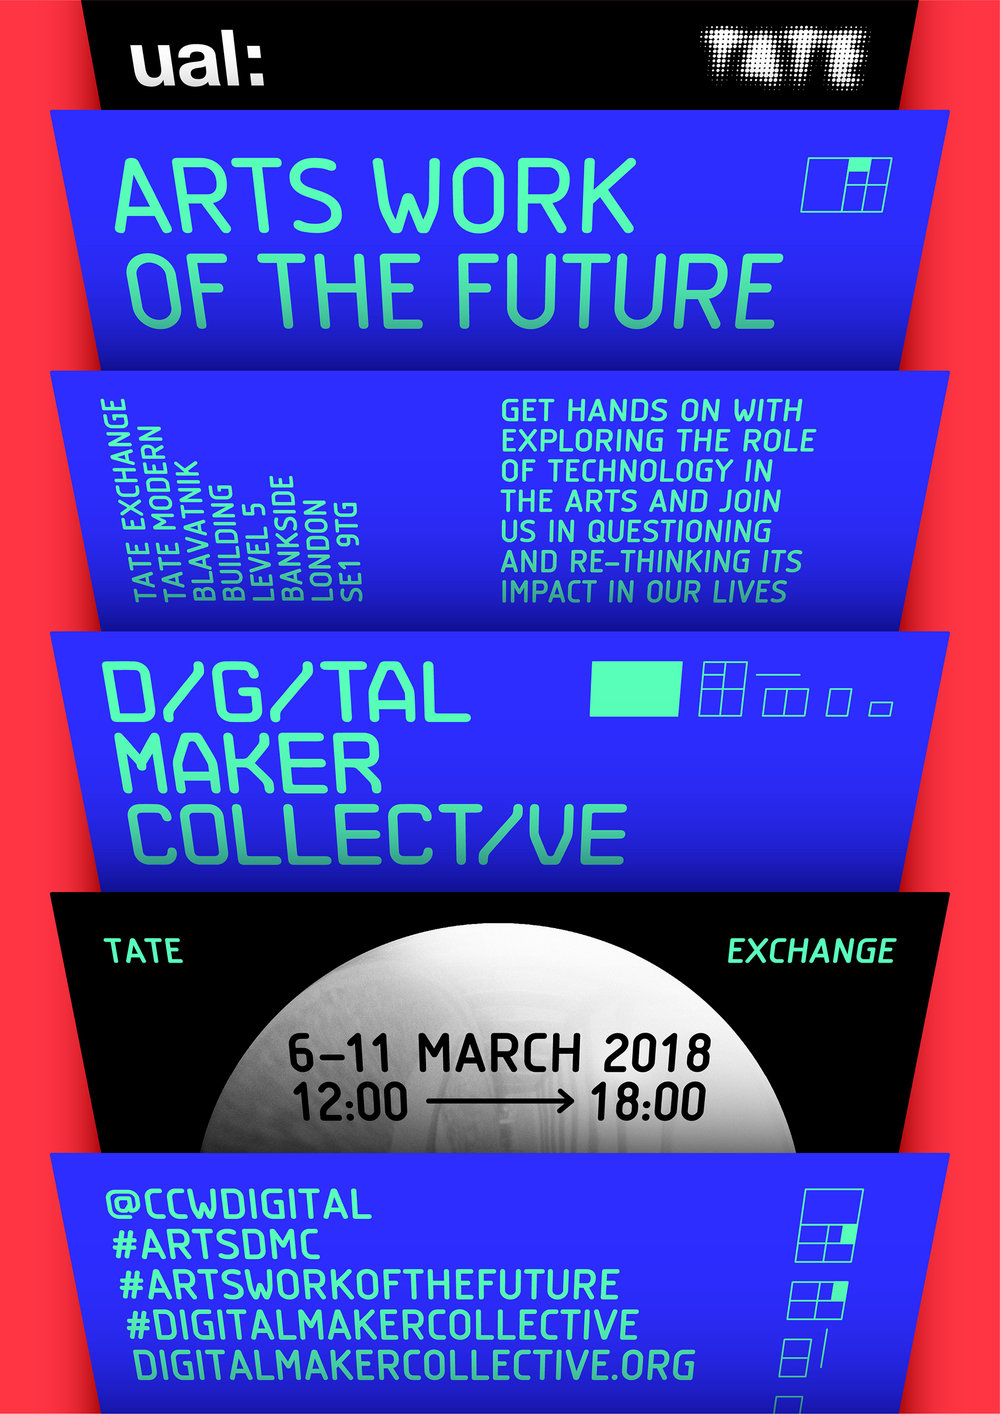 Digital-Maker-Collective_Social-media-banners-01.jpg